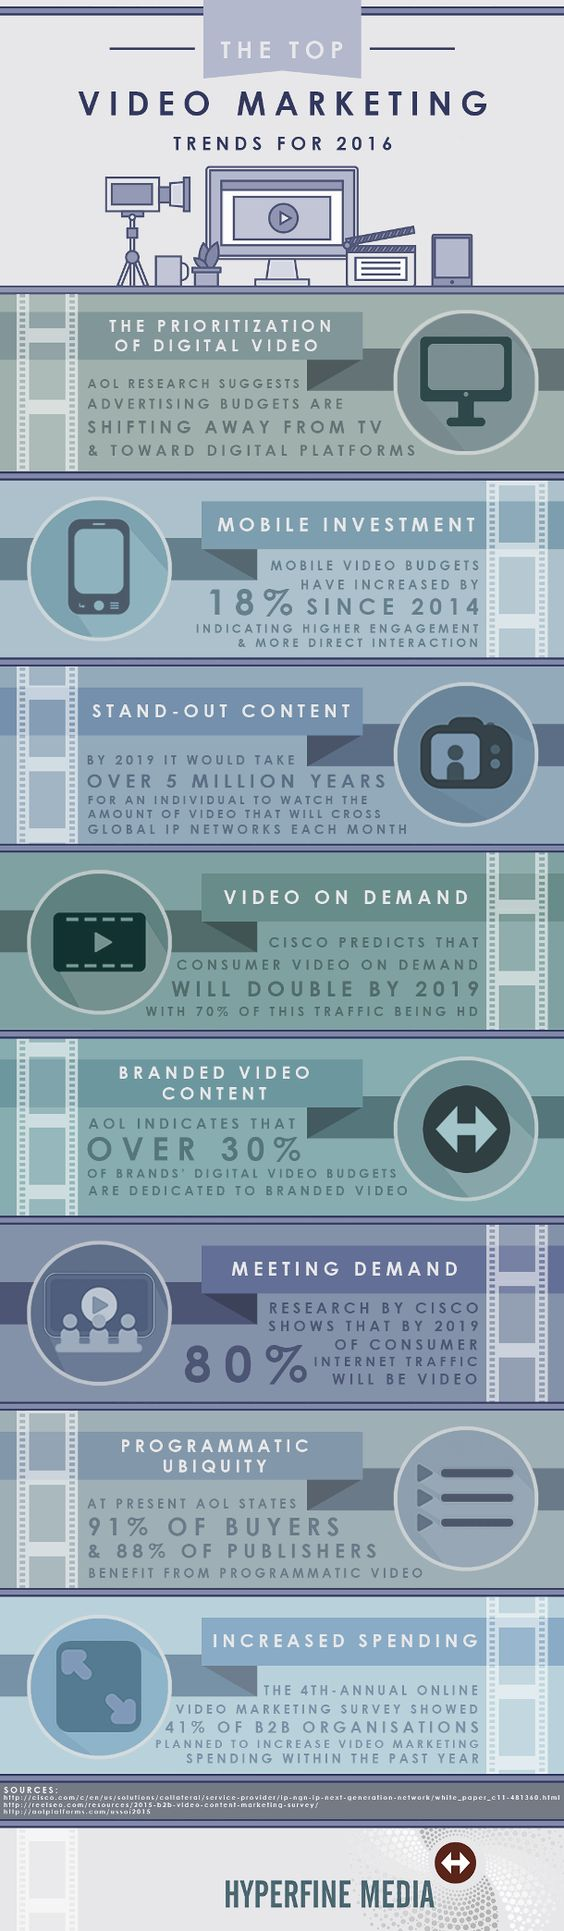 Video Marketing trends in 2016